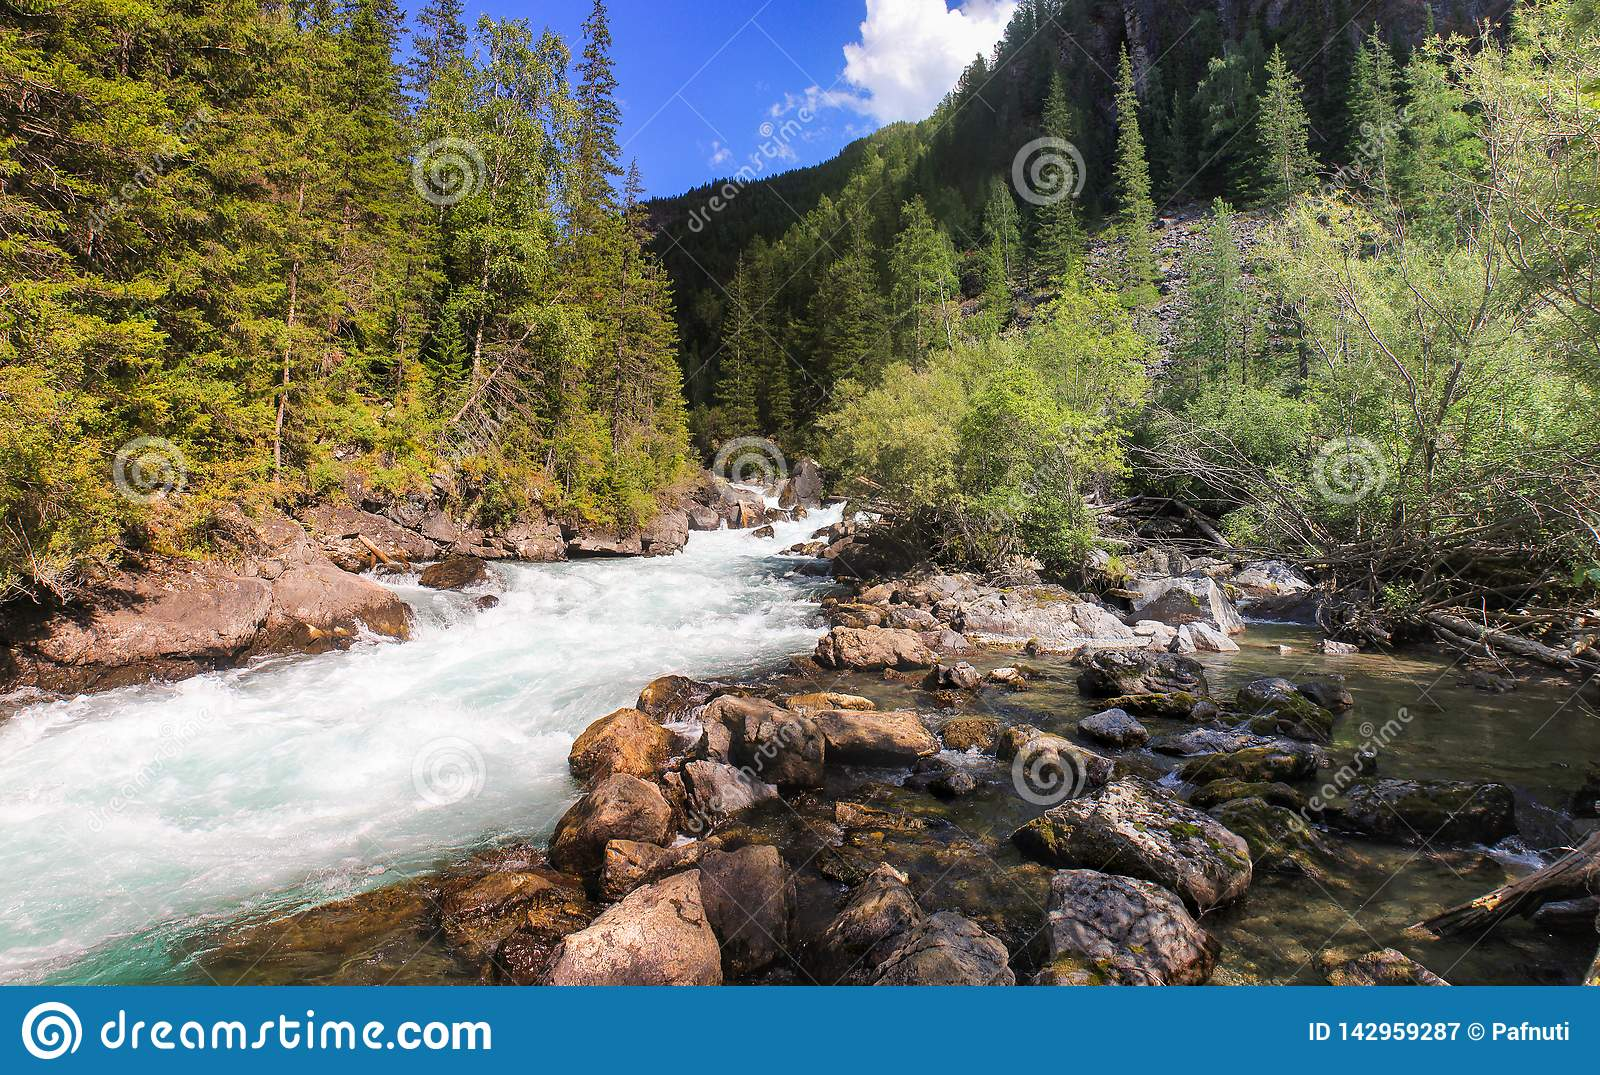 Journey through the wild nature of the Altai.